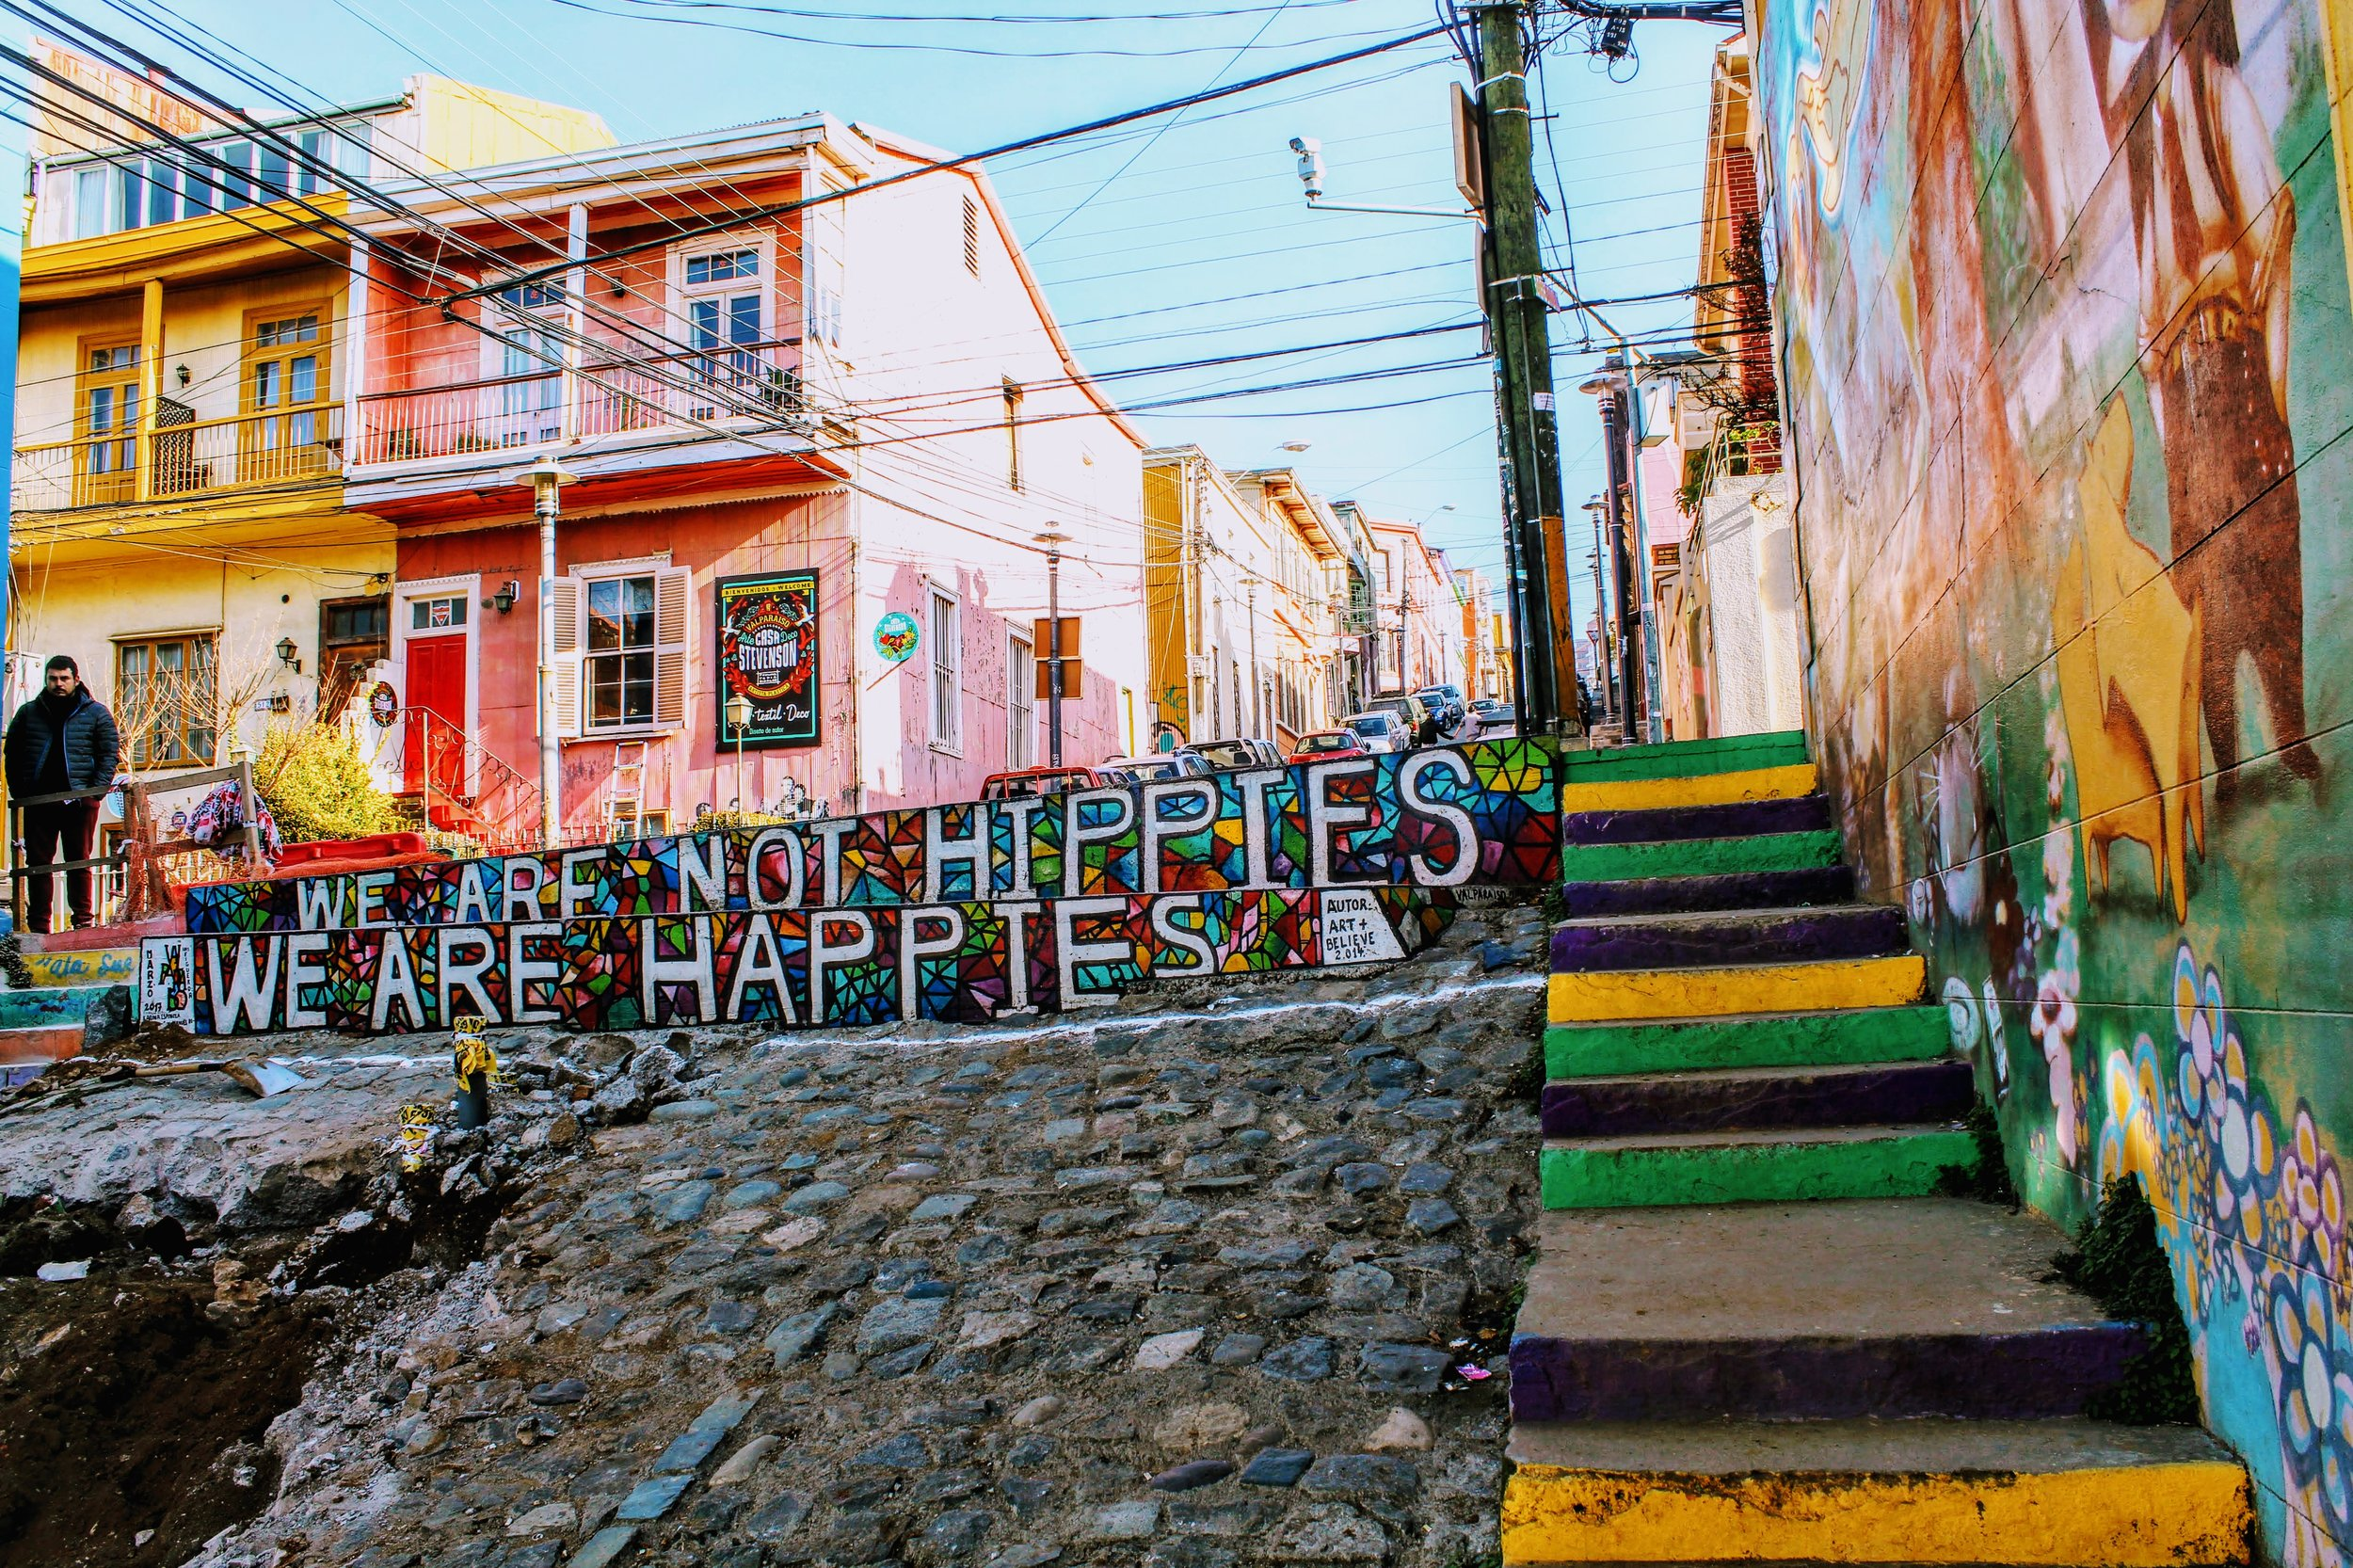 We are not hippies, we are happies. Not my favorite.